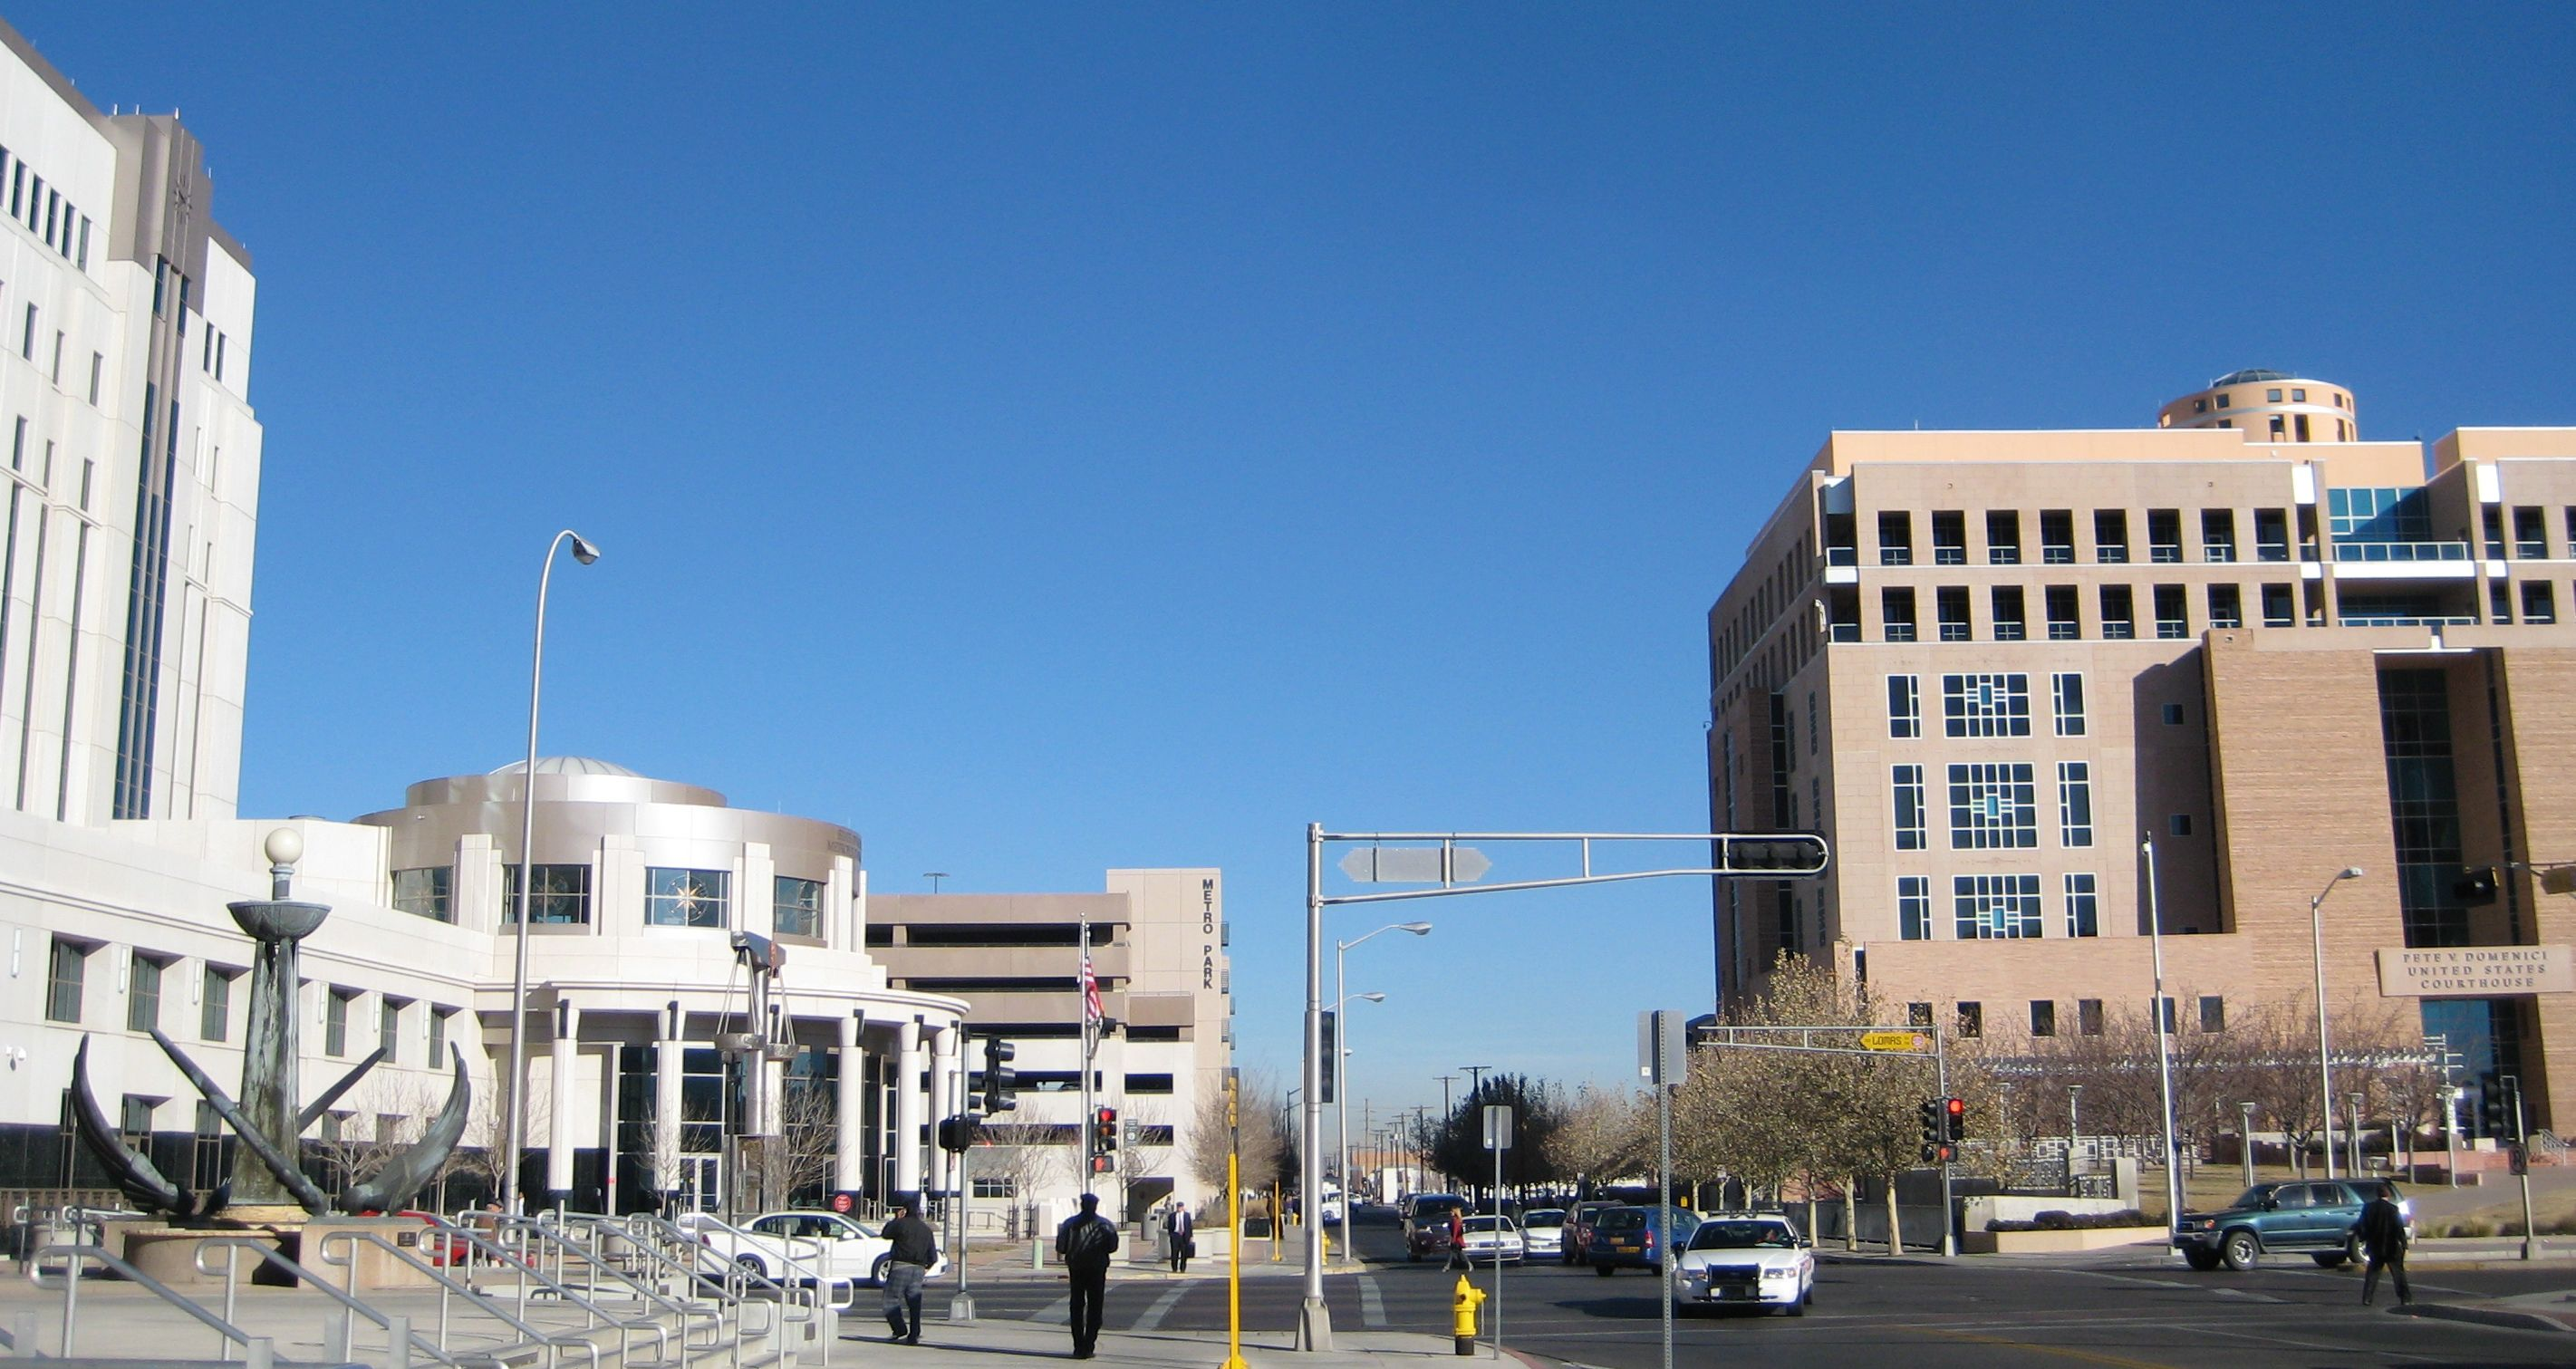 Bernalillo County Metropolitan Court (left); U.S. District Court for the District of New Mexico (right)